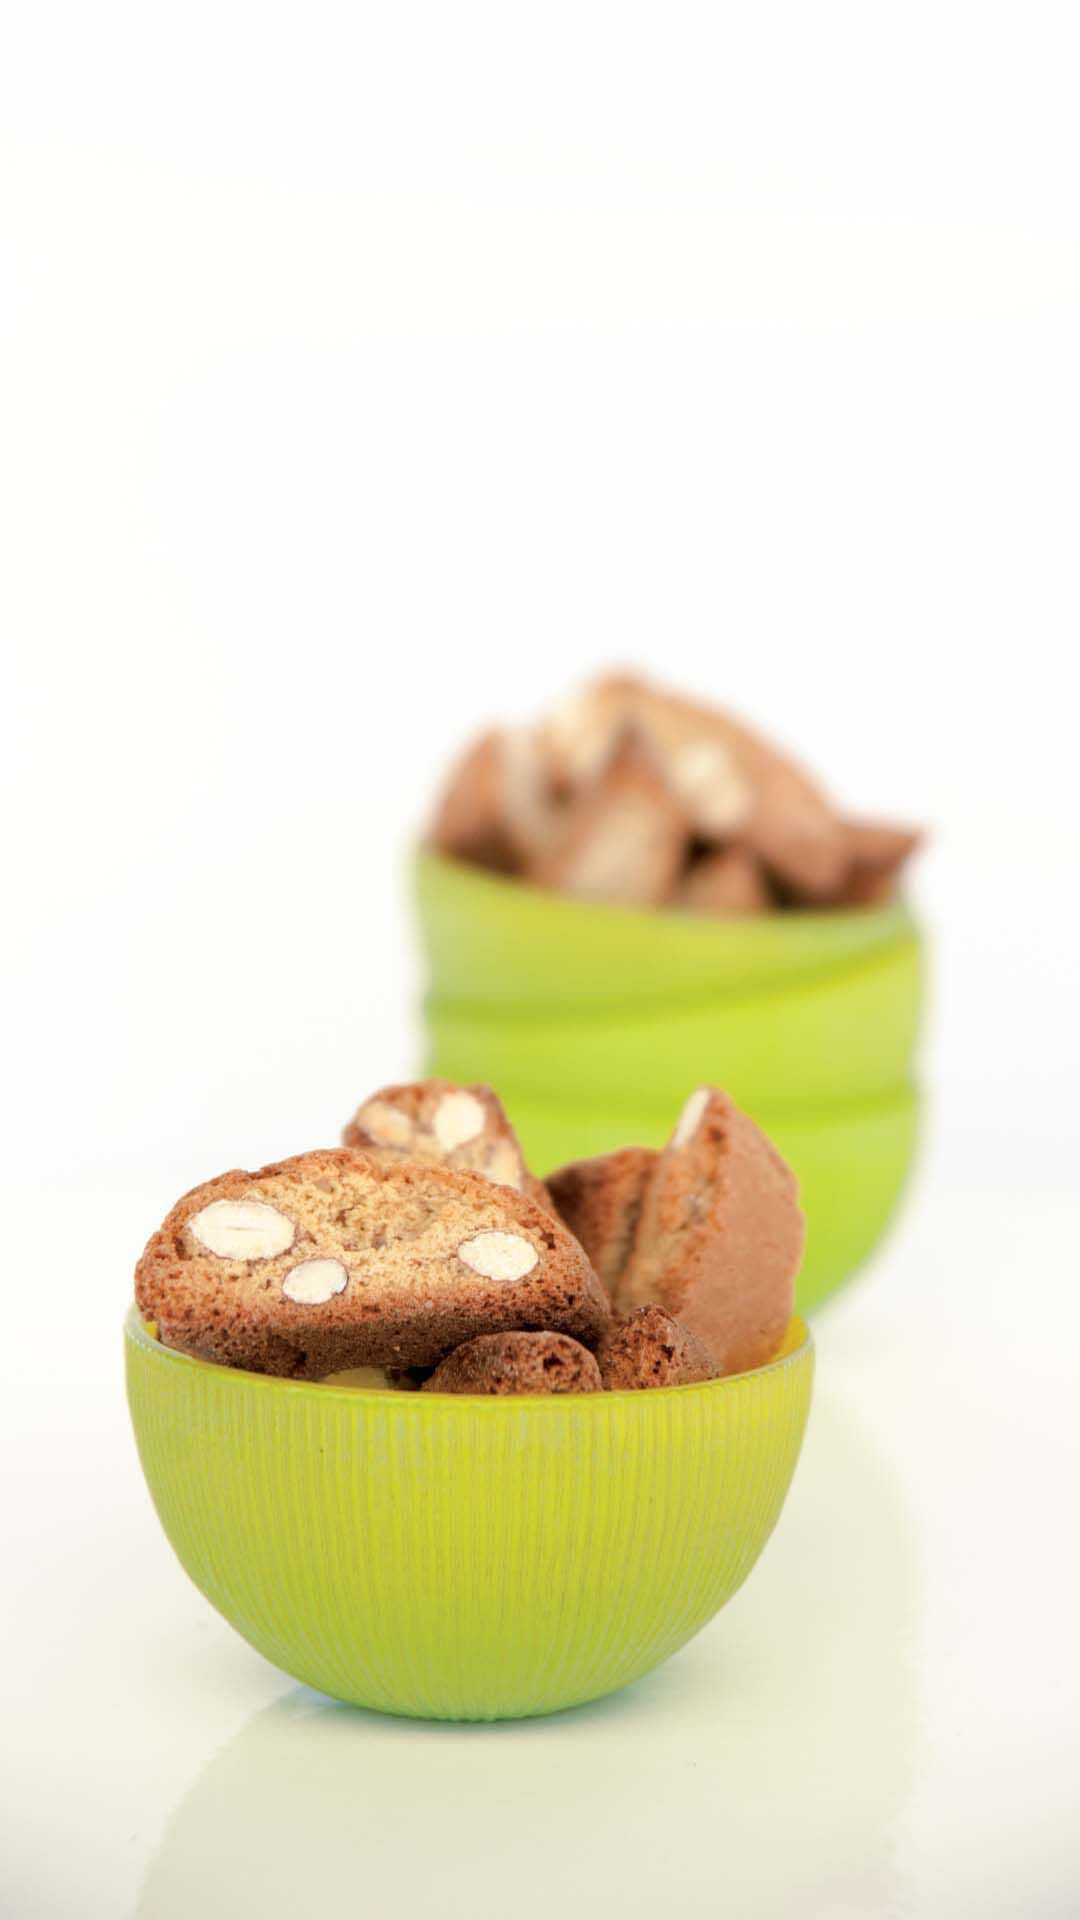 CNNU - 1 Box Almonds Cantuccini 400gm